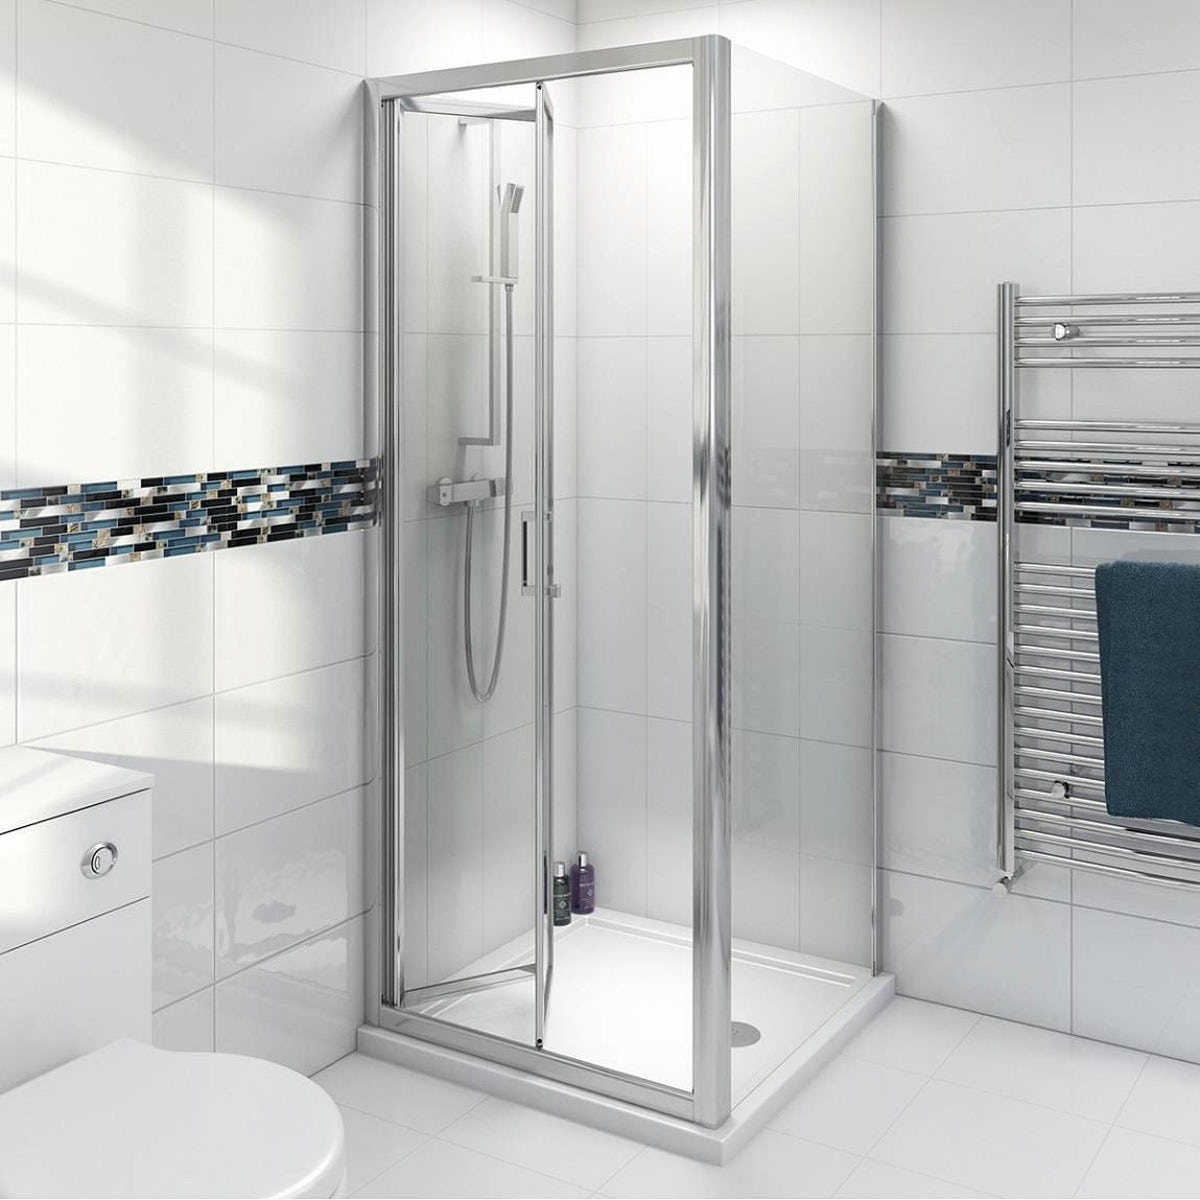 Clarity 4mm bifold shower enclosure